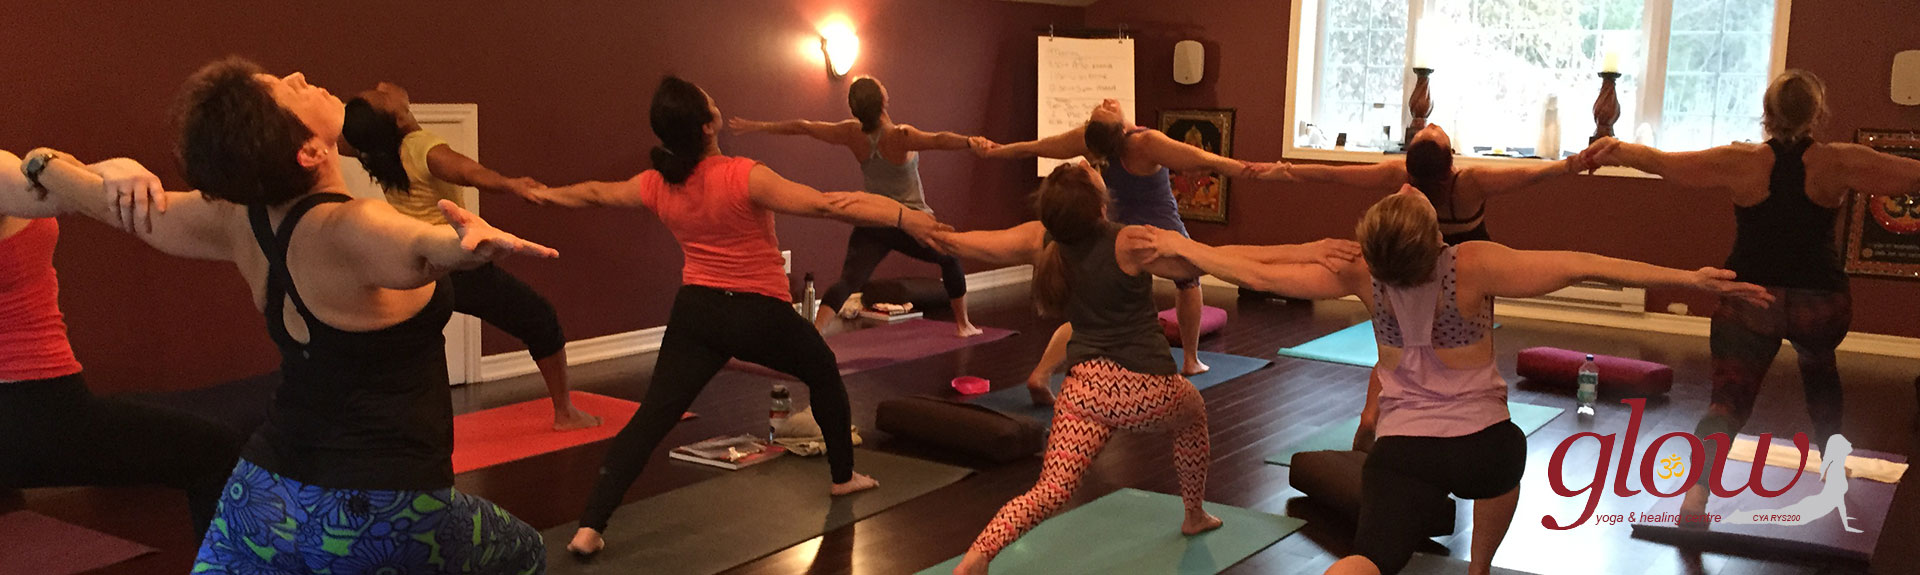 Glow Yoga, Illuminated Yoga Teacher Training - CYA RYS200